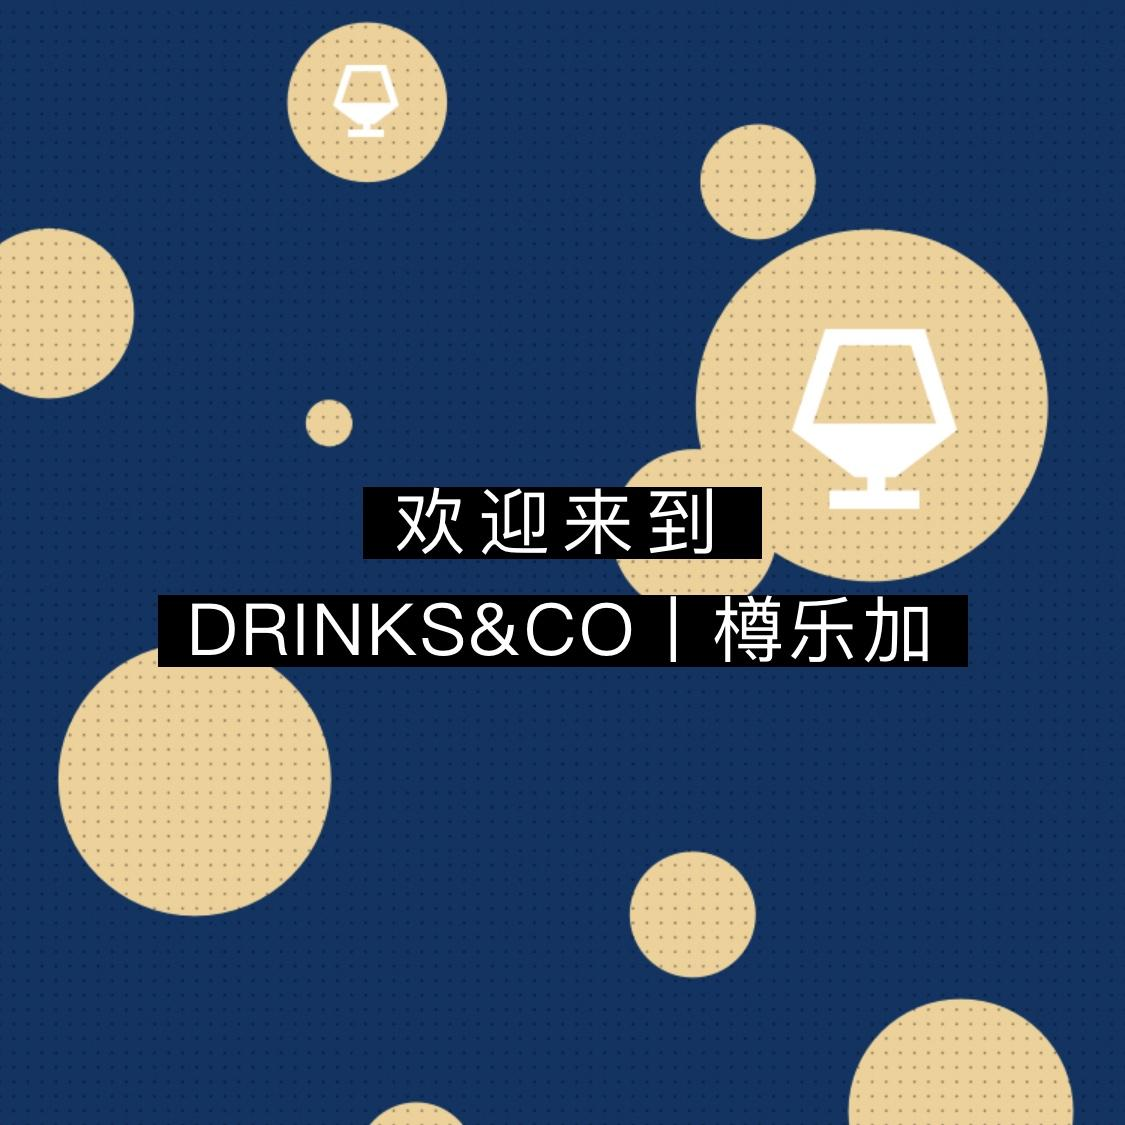 Pernod Ricard China Launches DRINKS&CO with its Chinese Name 樽乐加 [zūn lè jiā] Created by Labbrand